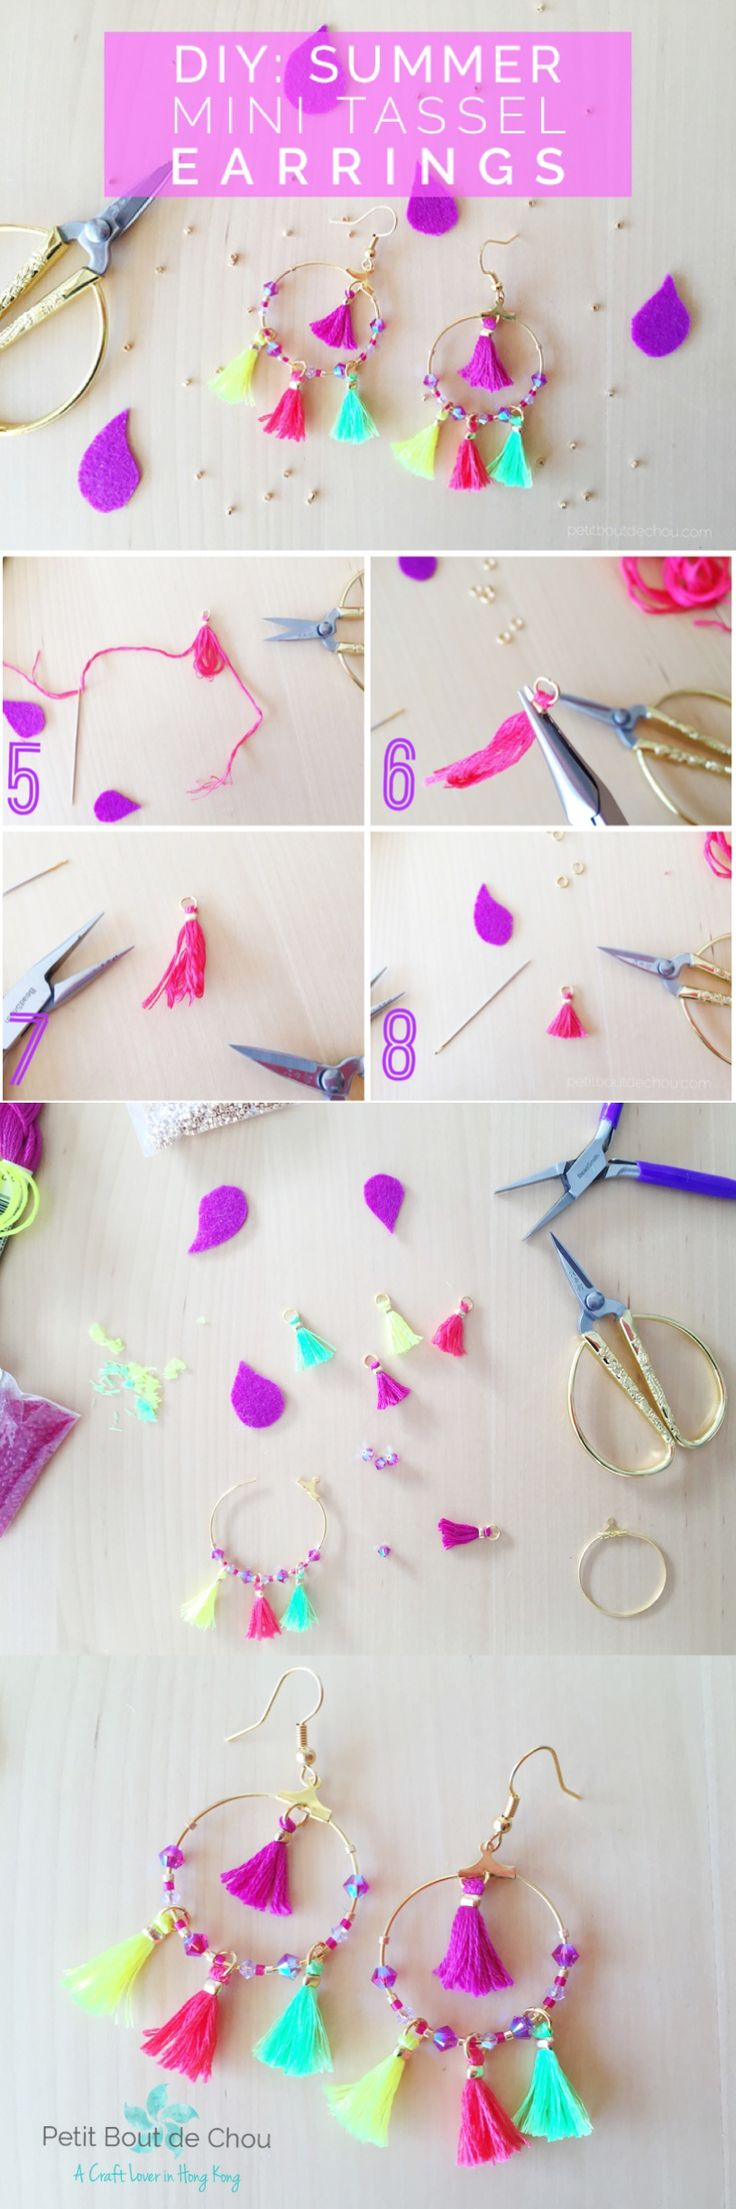 Learn how to make these shining summery mini tassel earrings with beads! Perfect for your future beach parties.